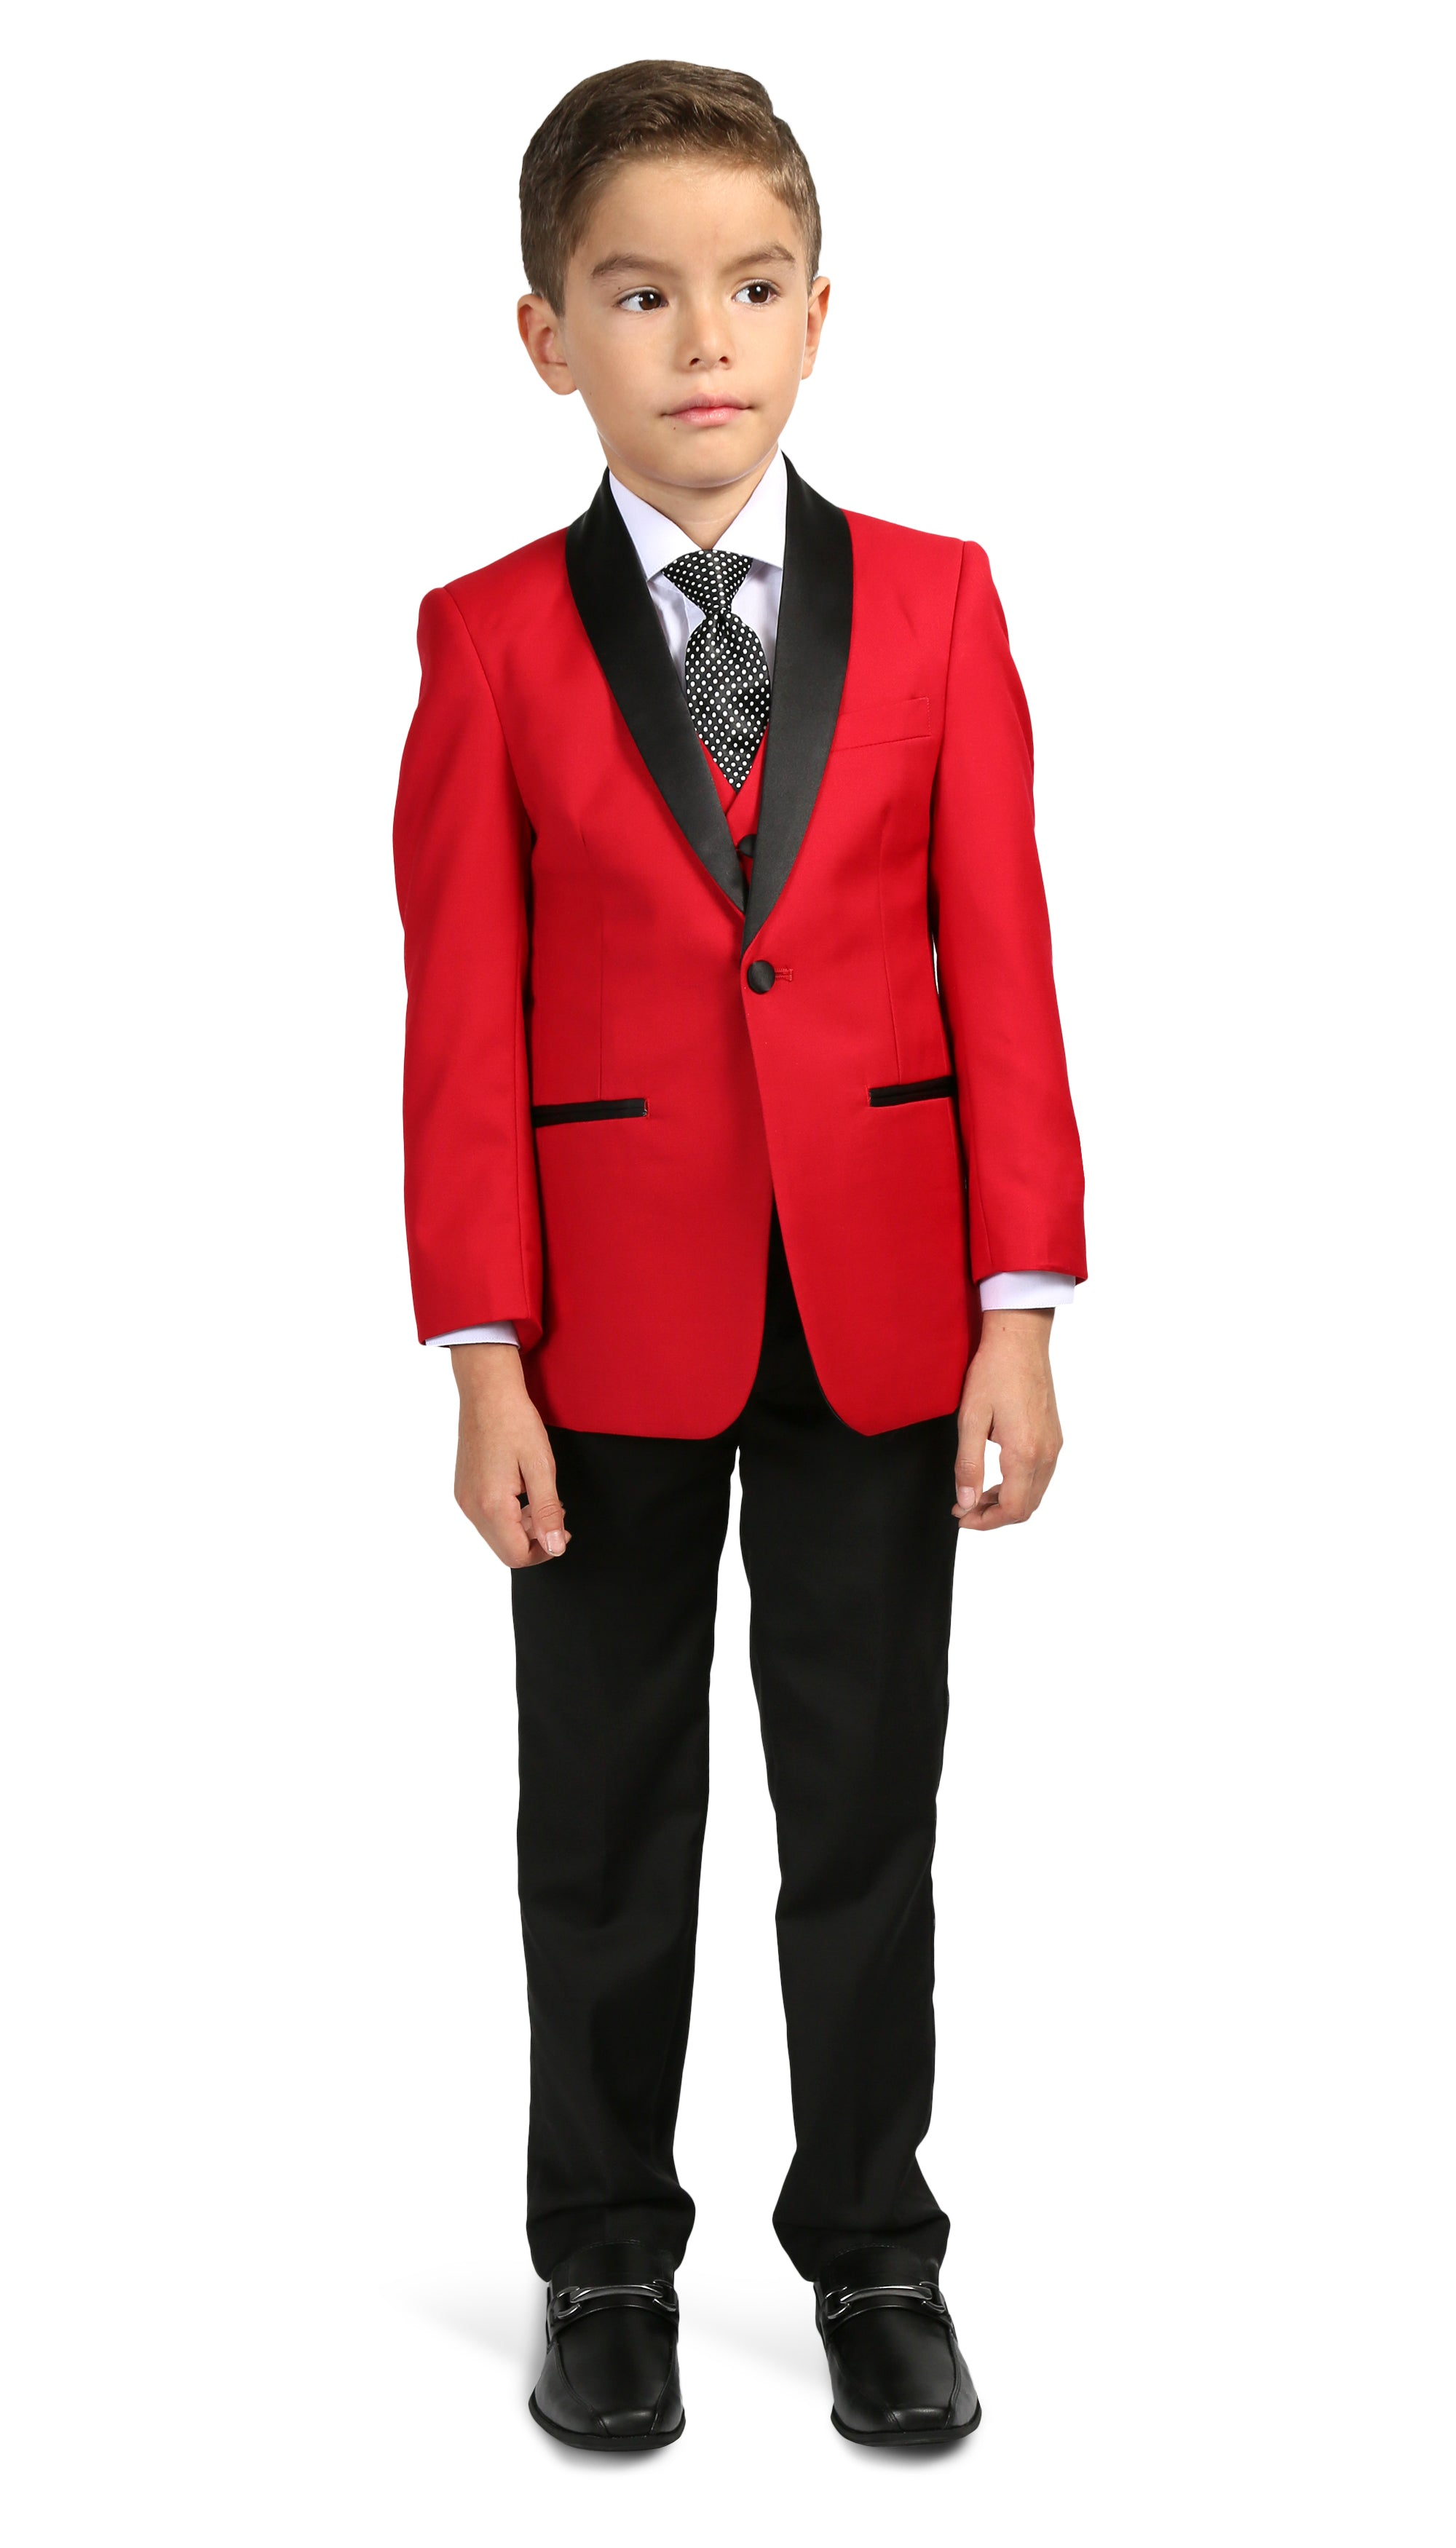 Boys Reno JR 5pc Red/Black Shawl Tuxedo Set